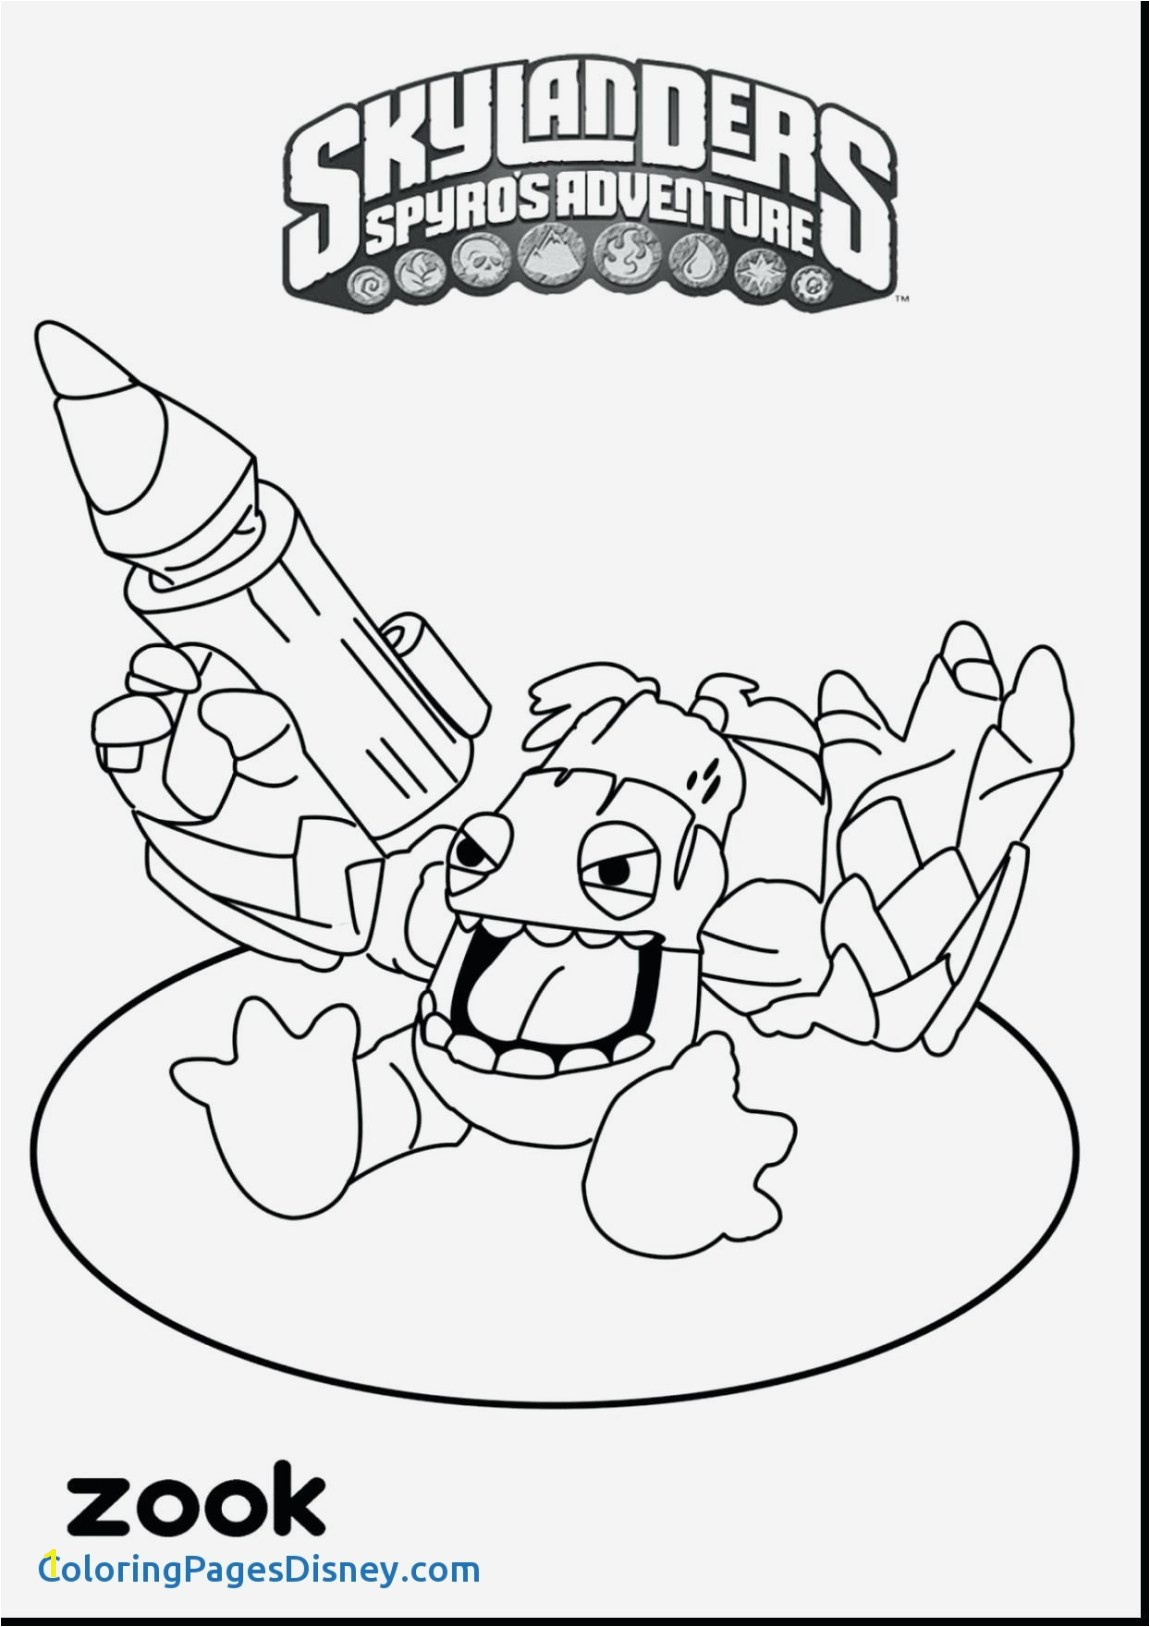 Gol and Bear Coloring Pages Inspirational Coloring Pages Disney Free Coloring Pages &